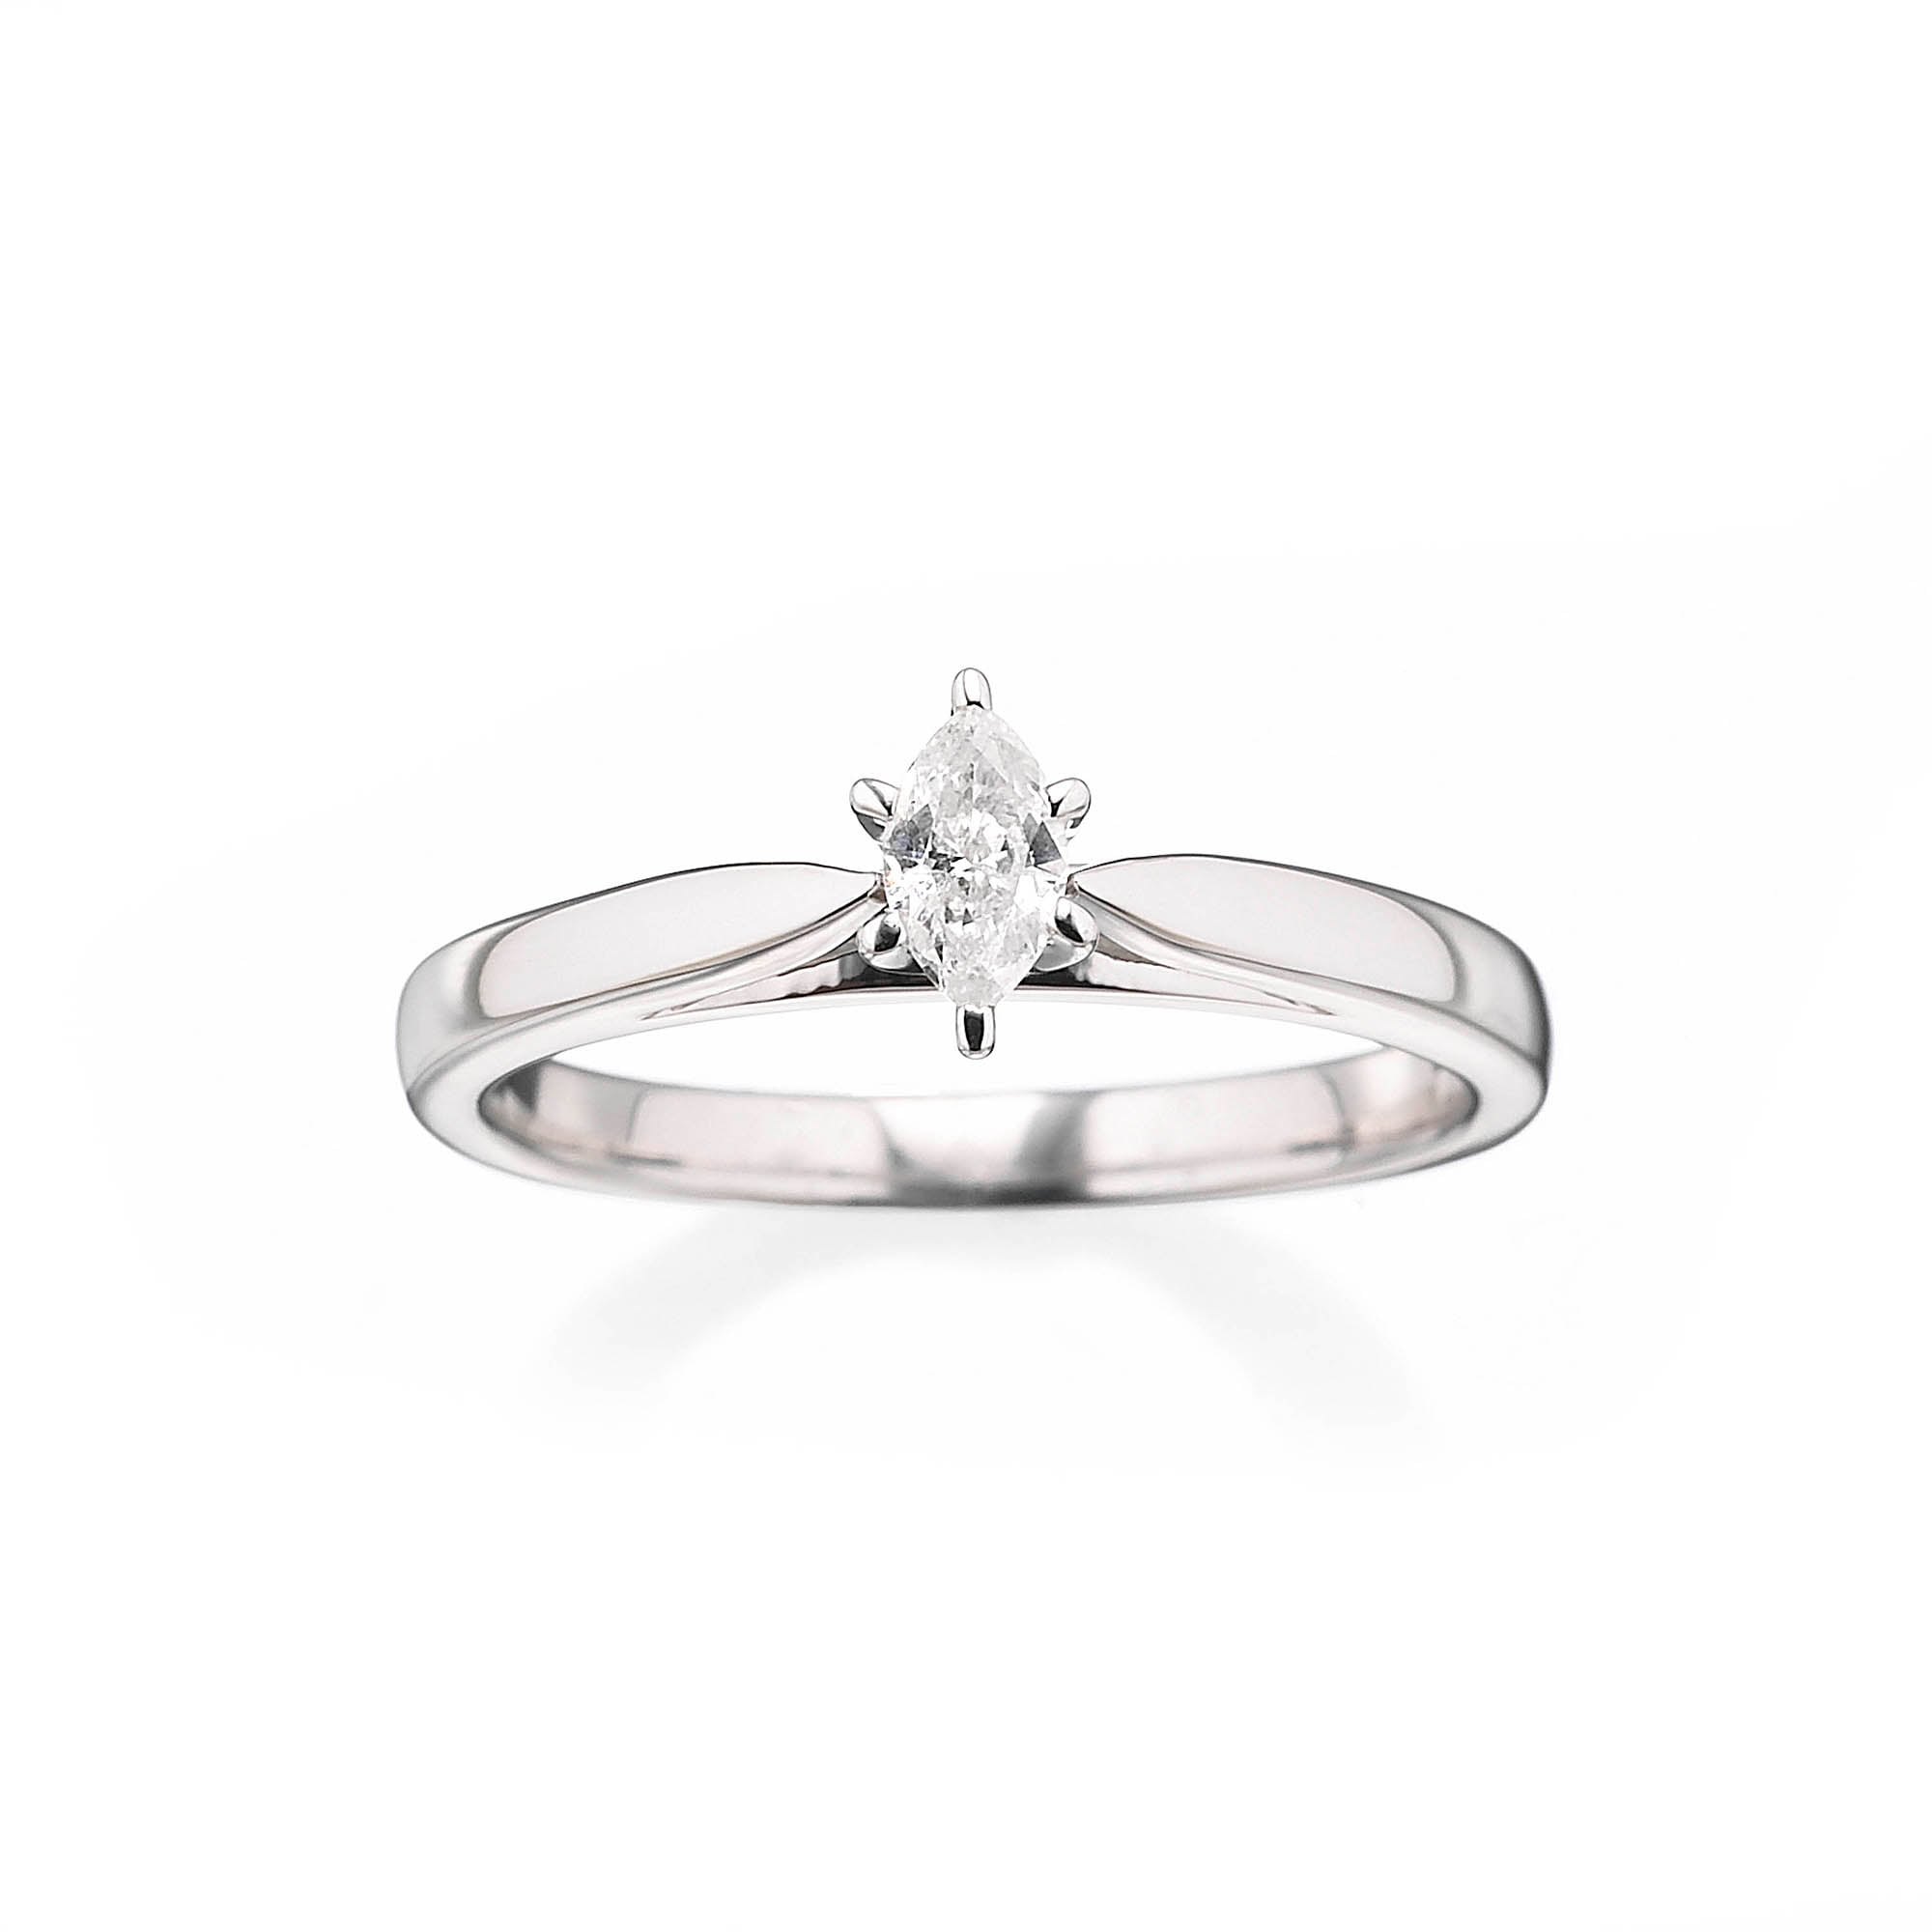 diamond ring carat with popular rings attachment elegant wedding engagement full tiffany most of